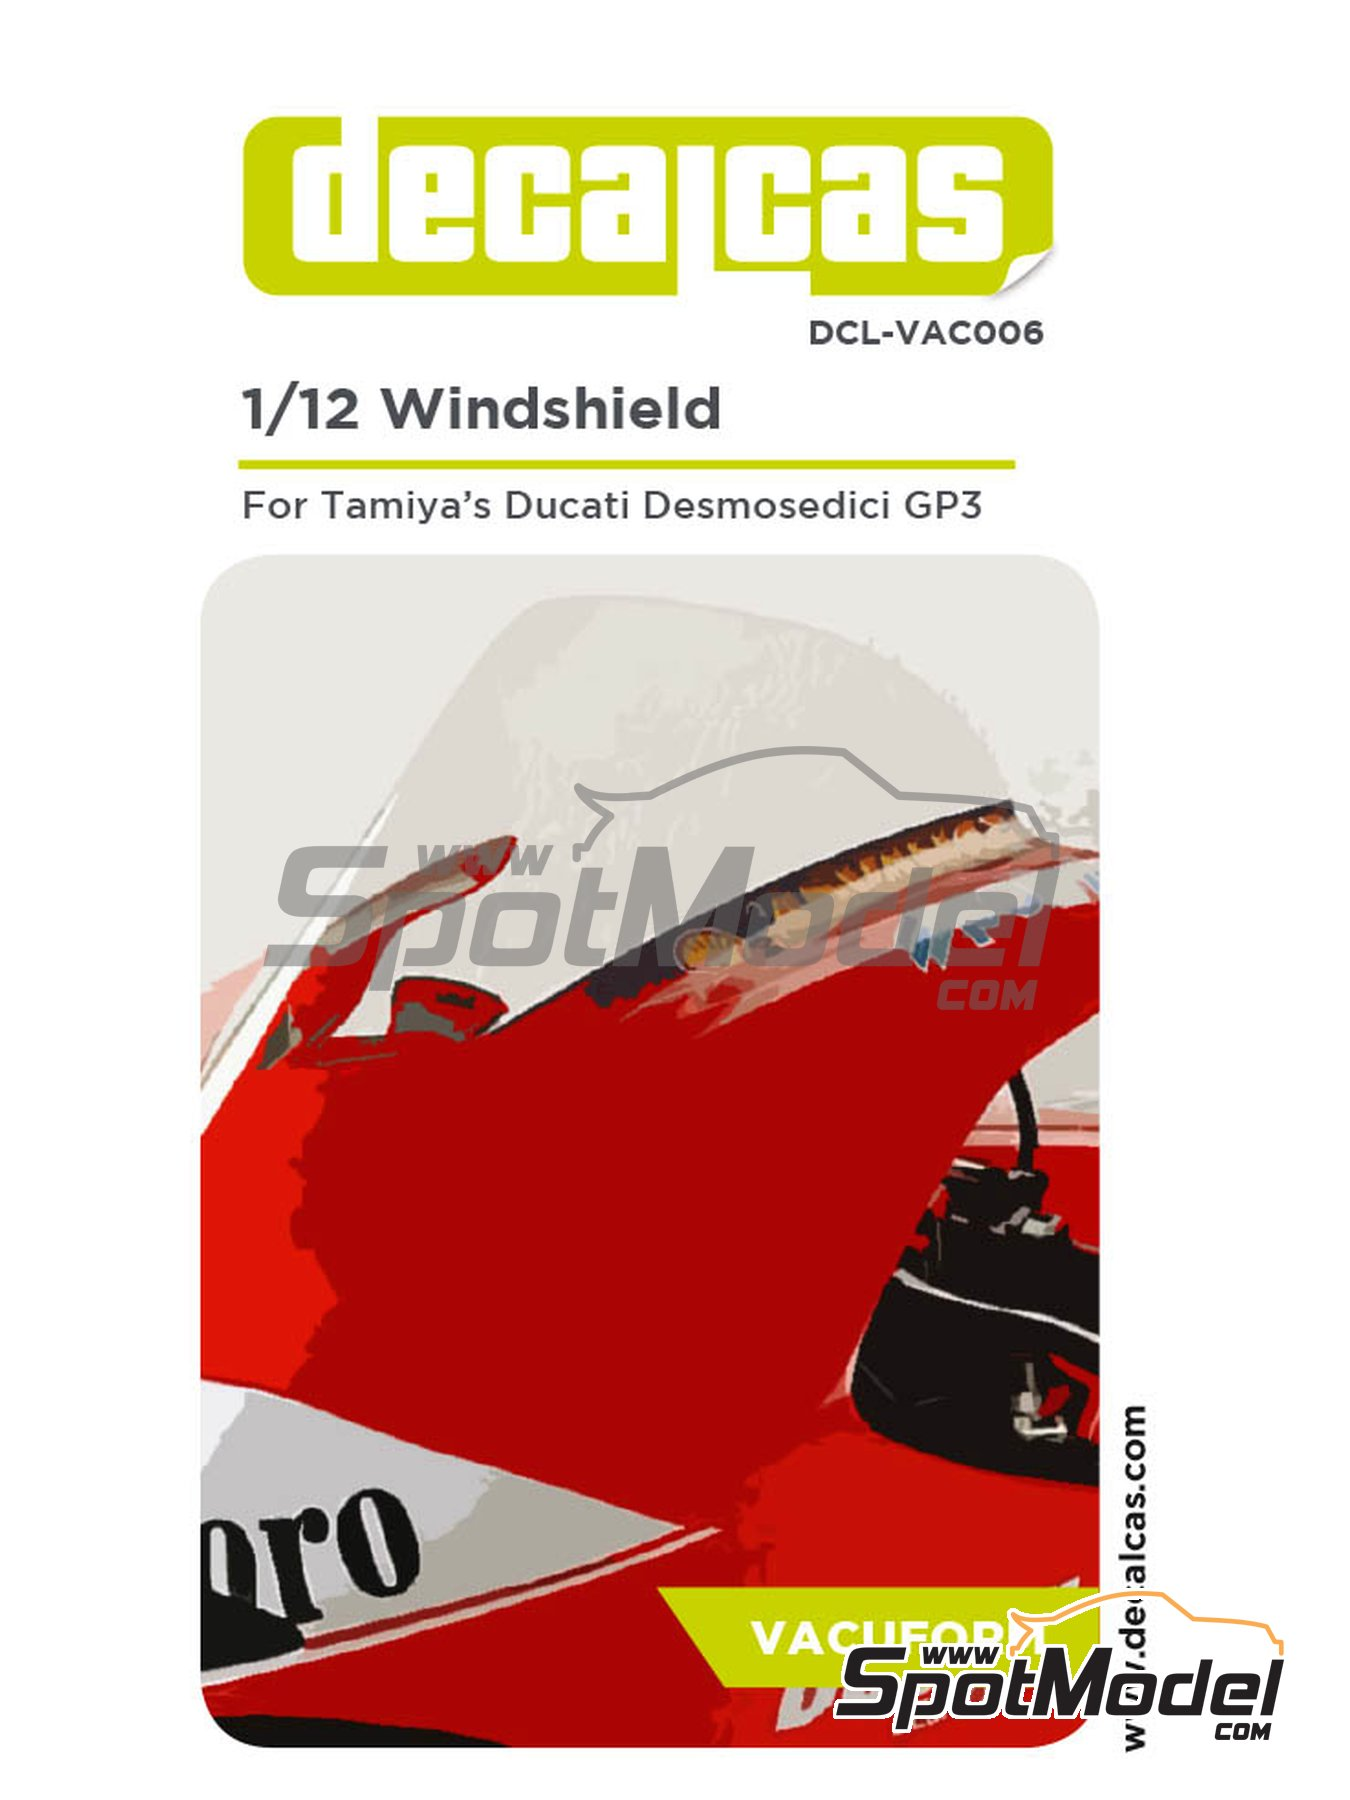 Ducati Desmosedici GP3 - Motorcycle World Championship 2003 | Vacuum formed parts in 1/12 scale manufactured by Decalcas (ref.DCL-VAC006) image